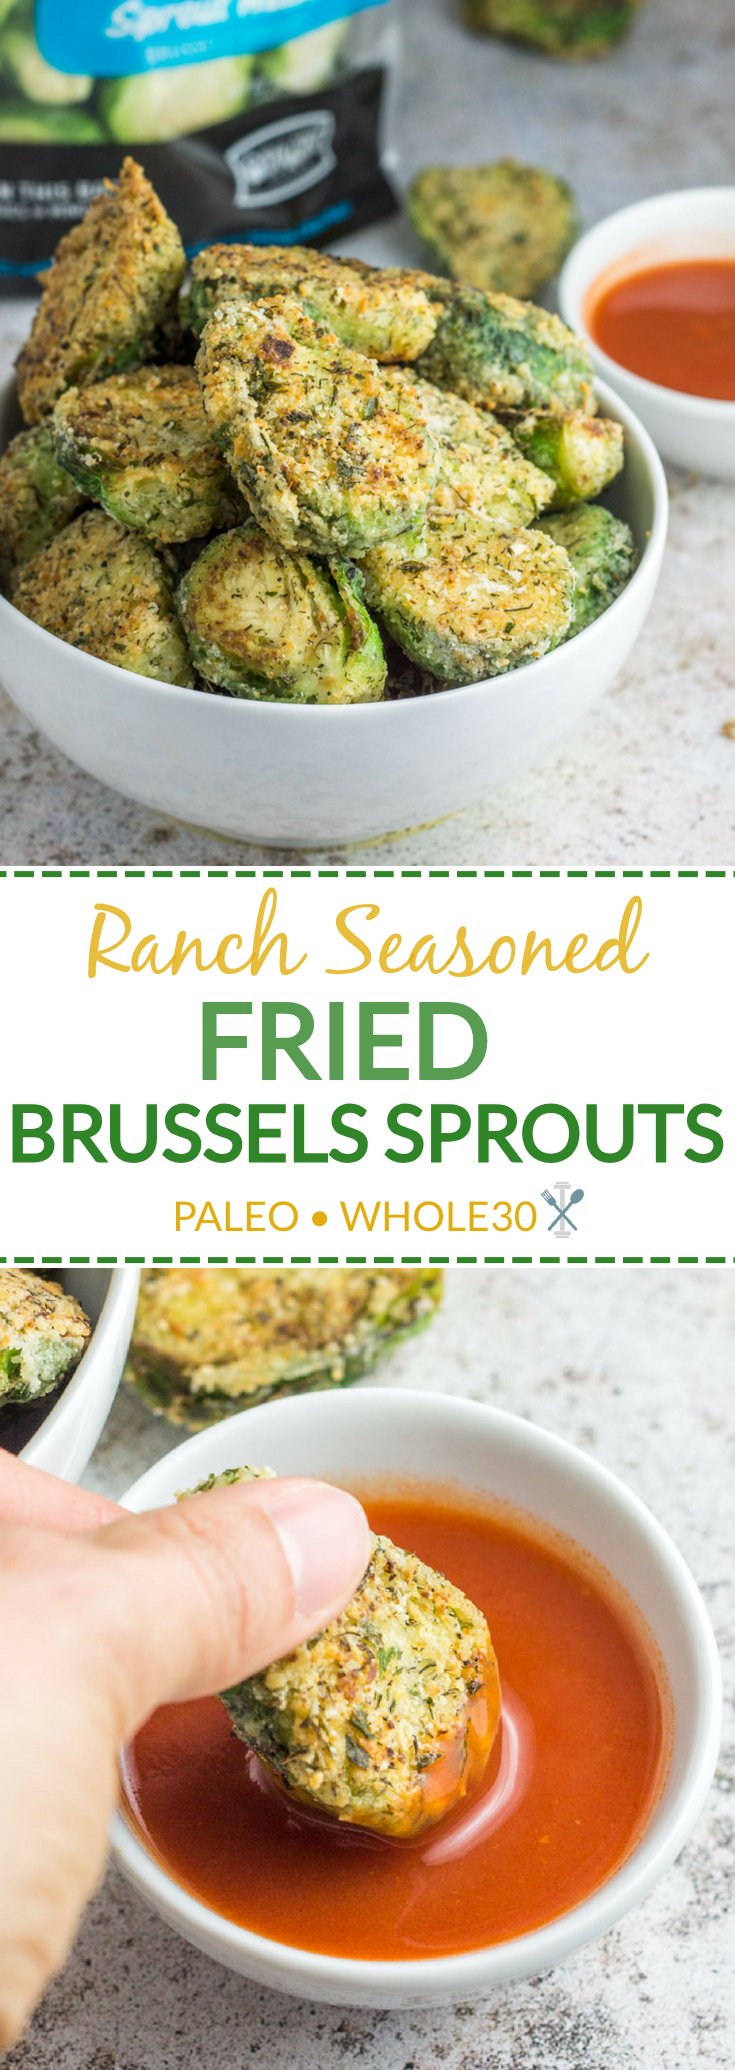 These paleo + Whole30 Ranch Seasoned Fried Brussels Sprouts are a quick and easy veggie side pan-fried to perfection in 20 minutes or less using Ocean Mist Farms Season & Steam Brussels Sprouts #ad